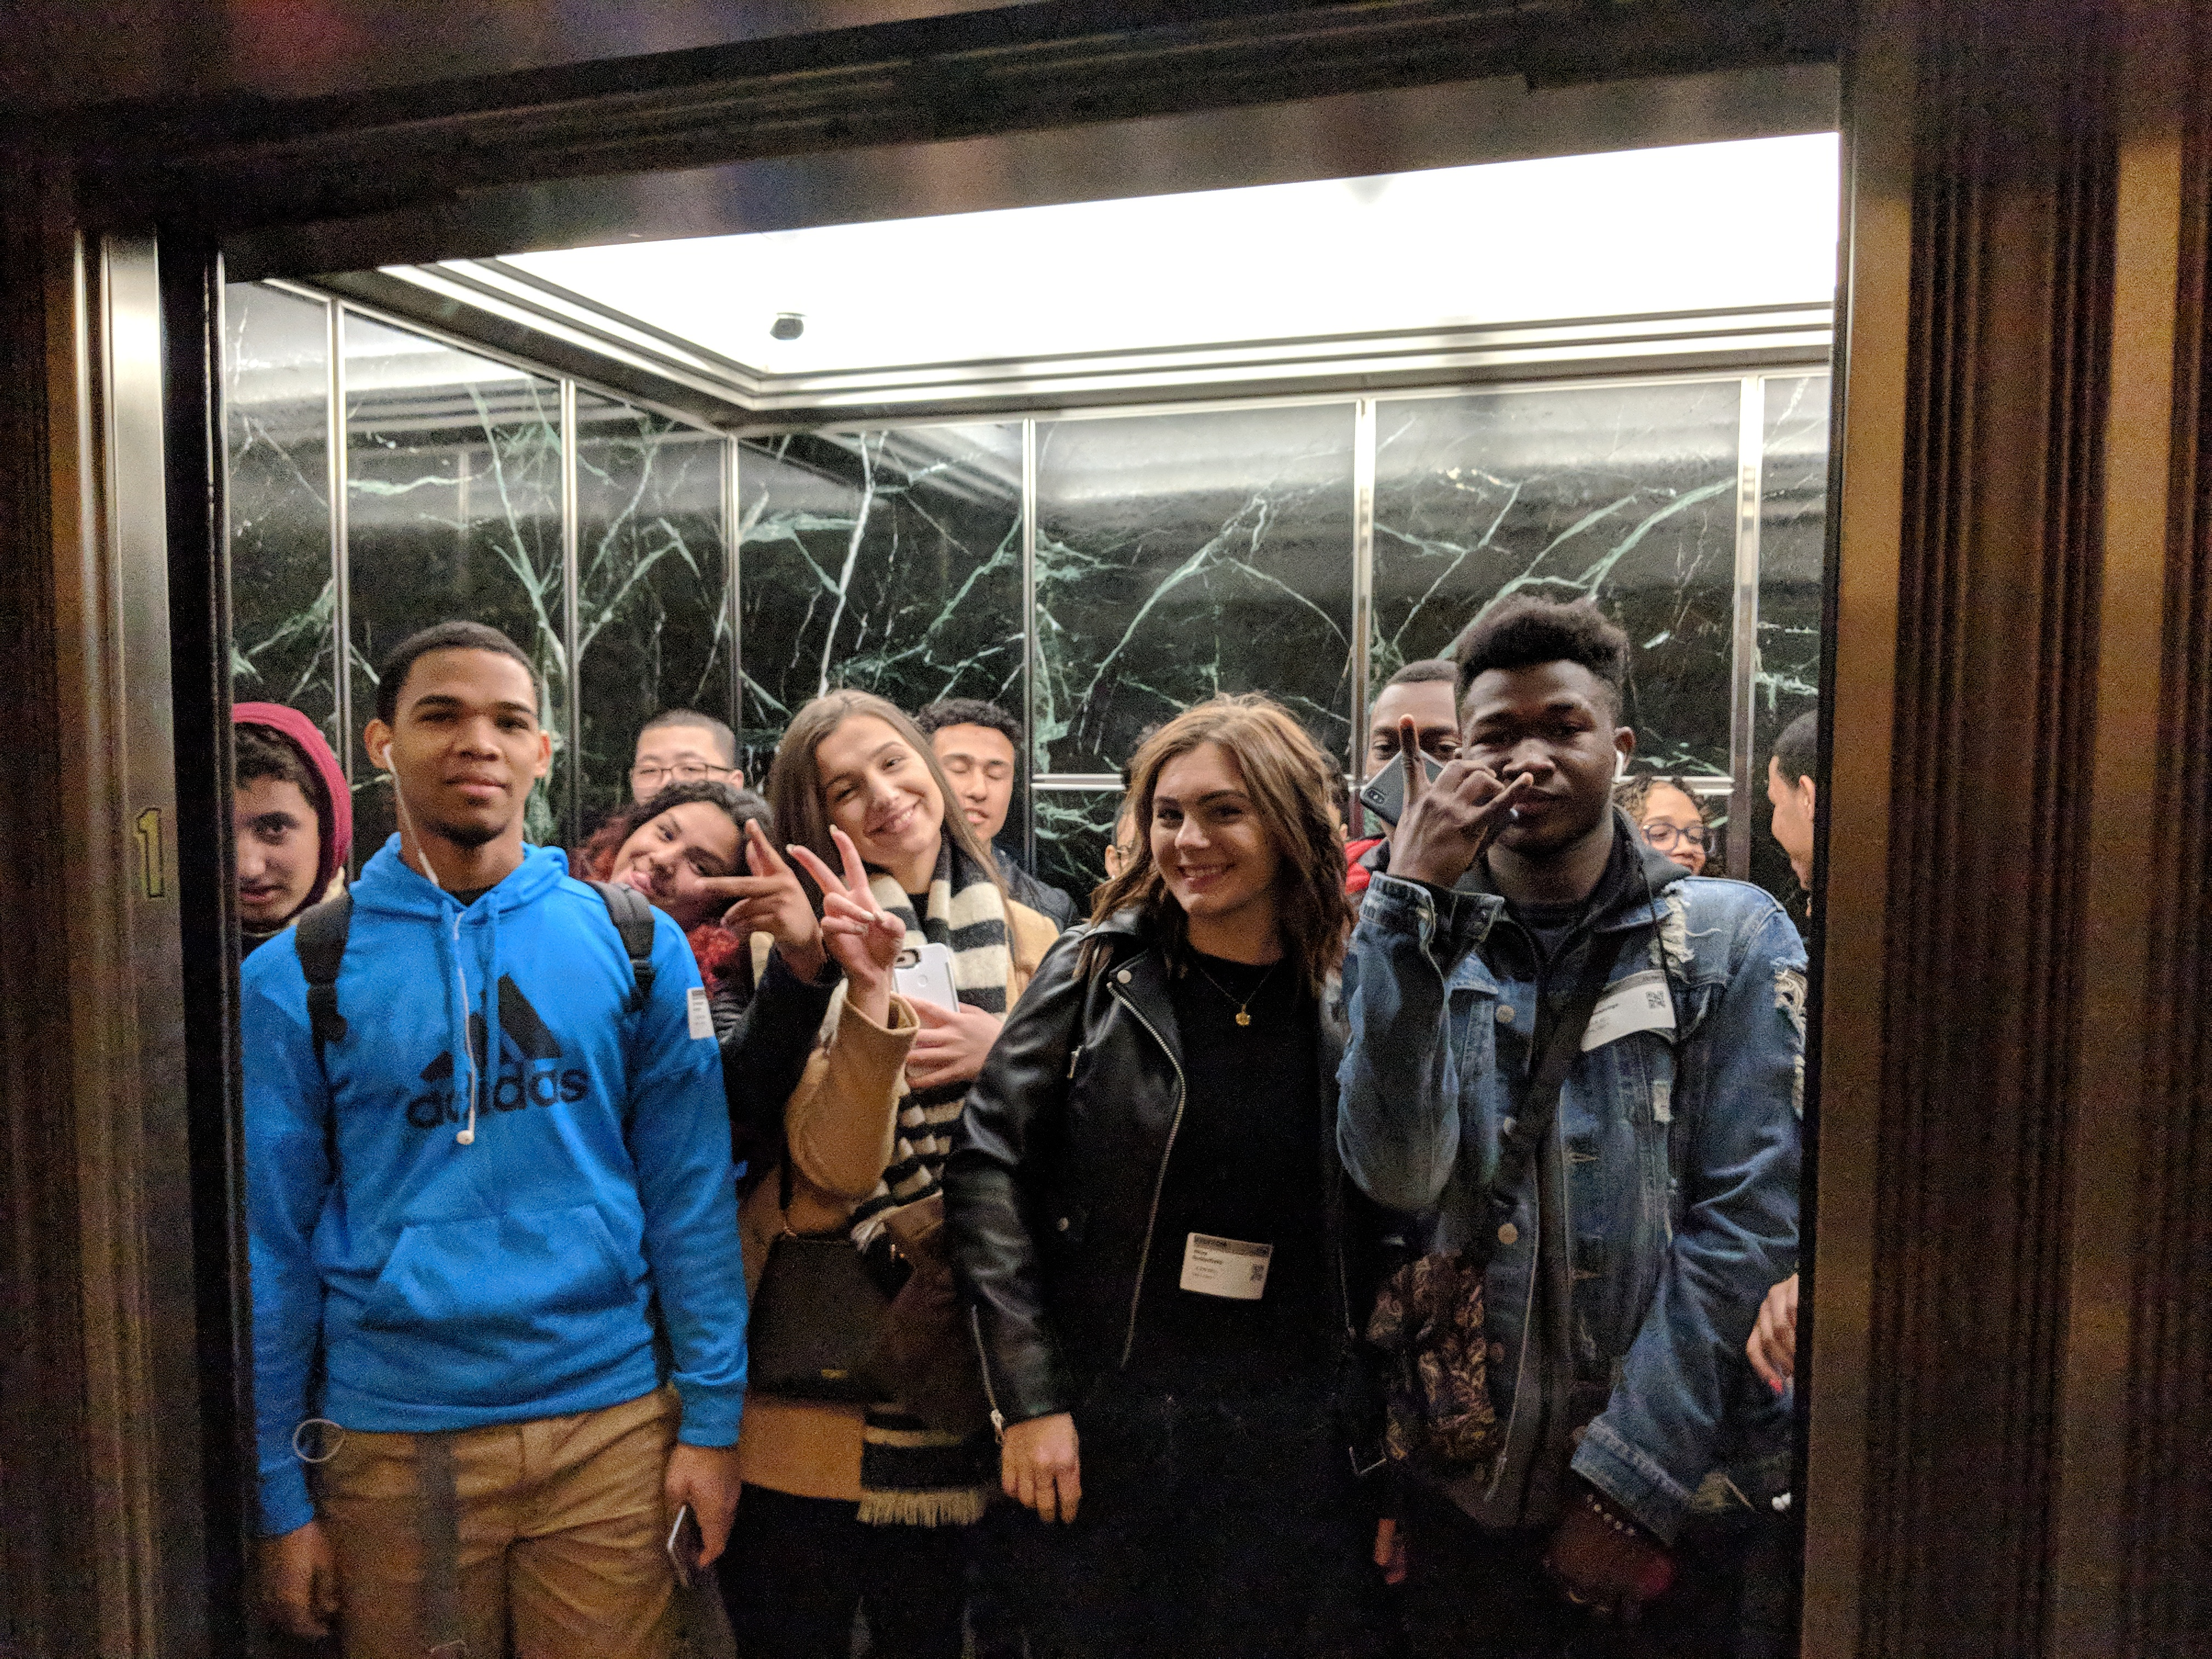 Students in elevator